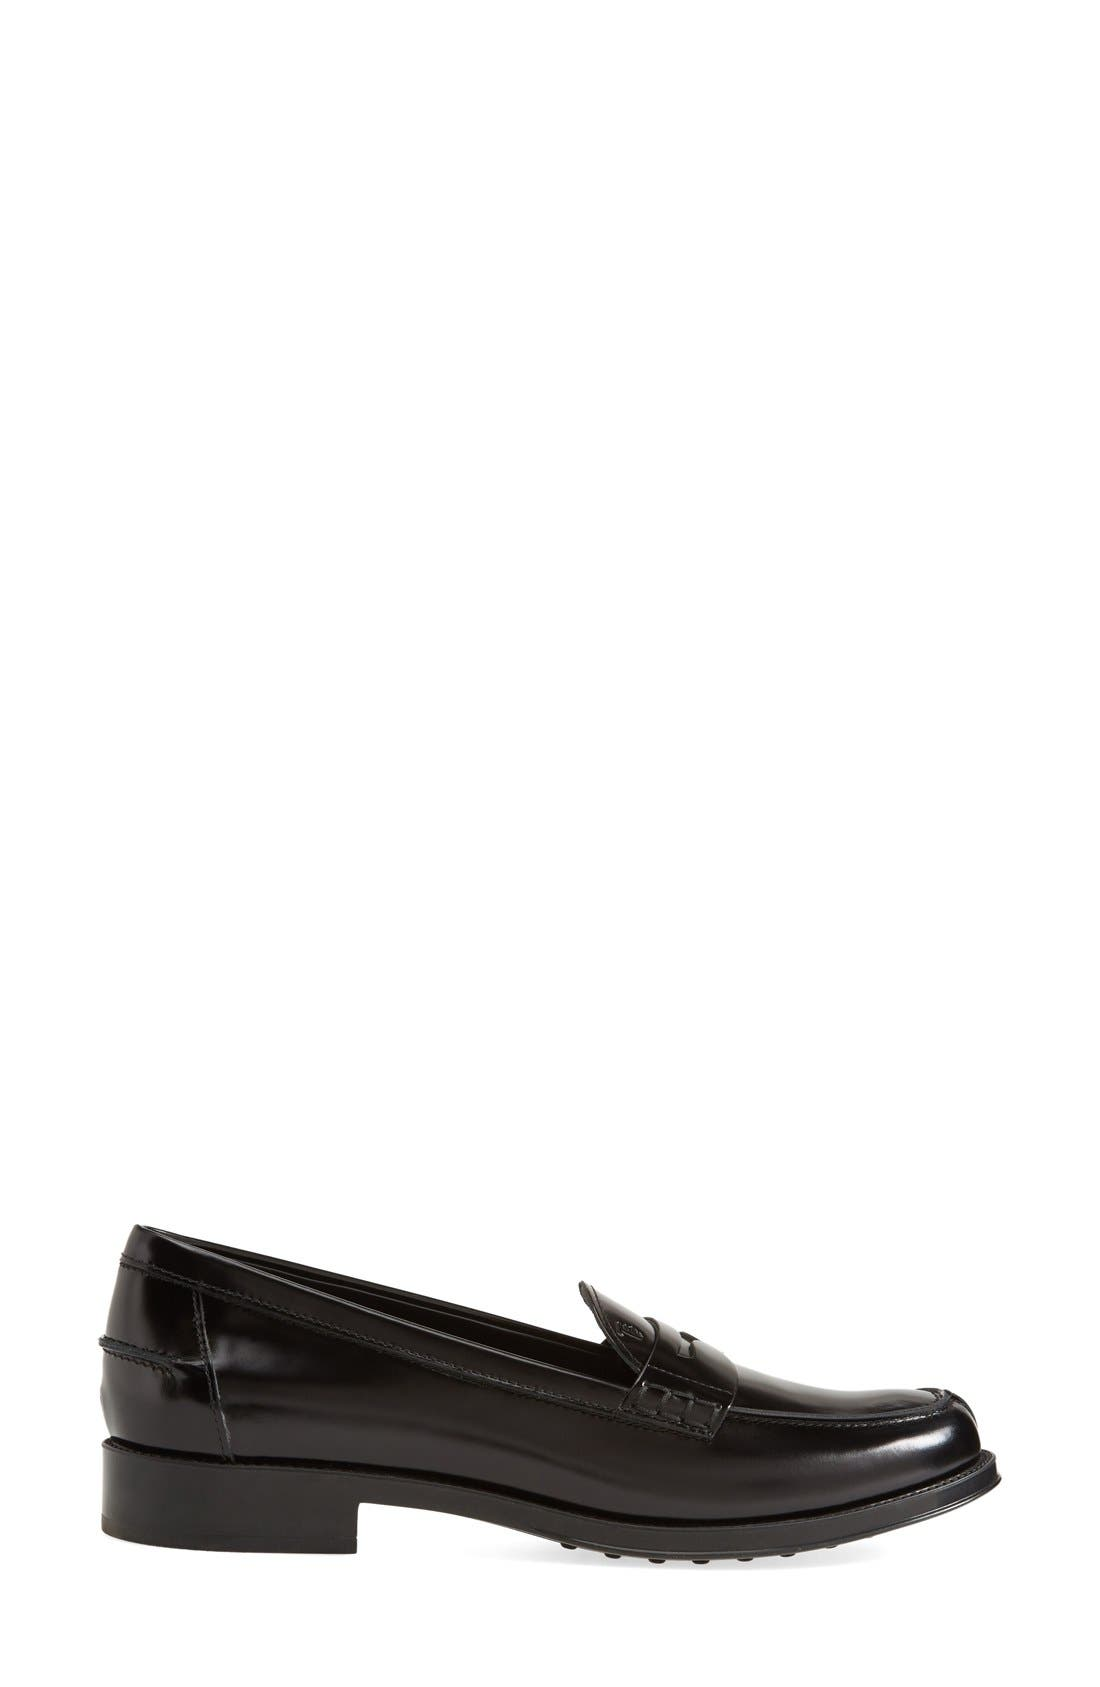 Penny Loafer,                             Alternate thumbnail 4, color,                             BLACK LEATHER